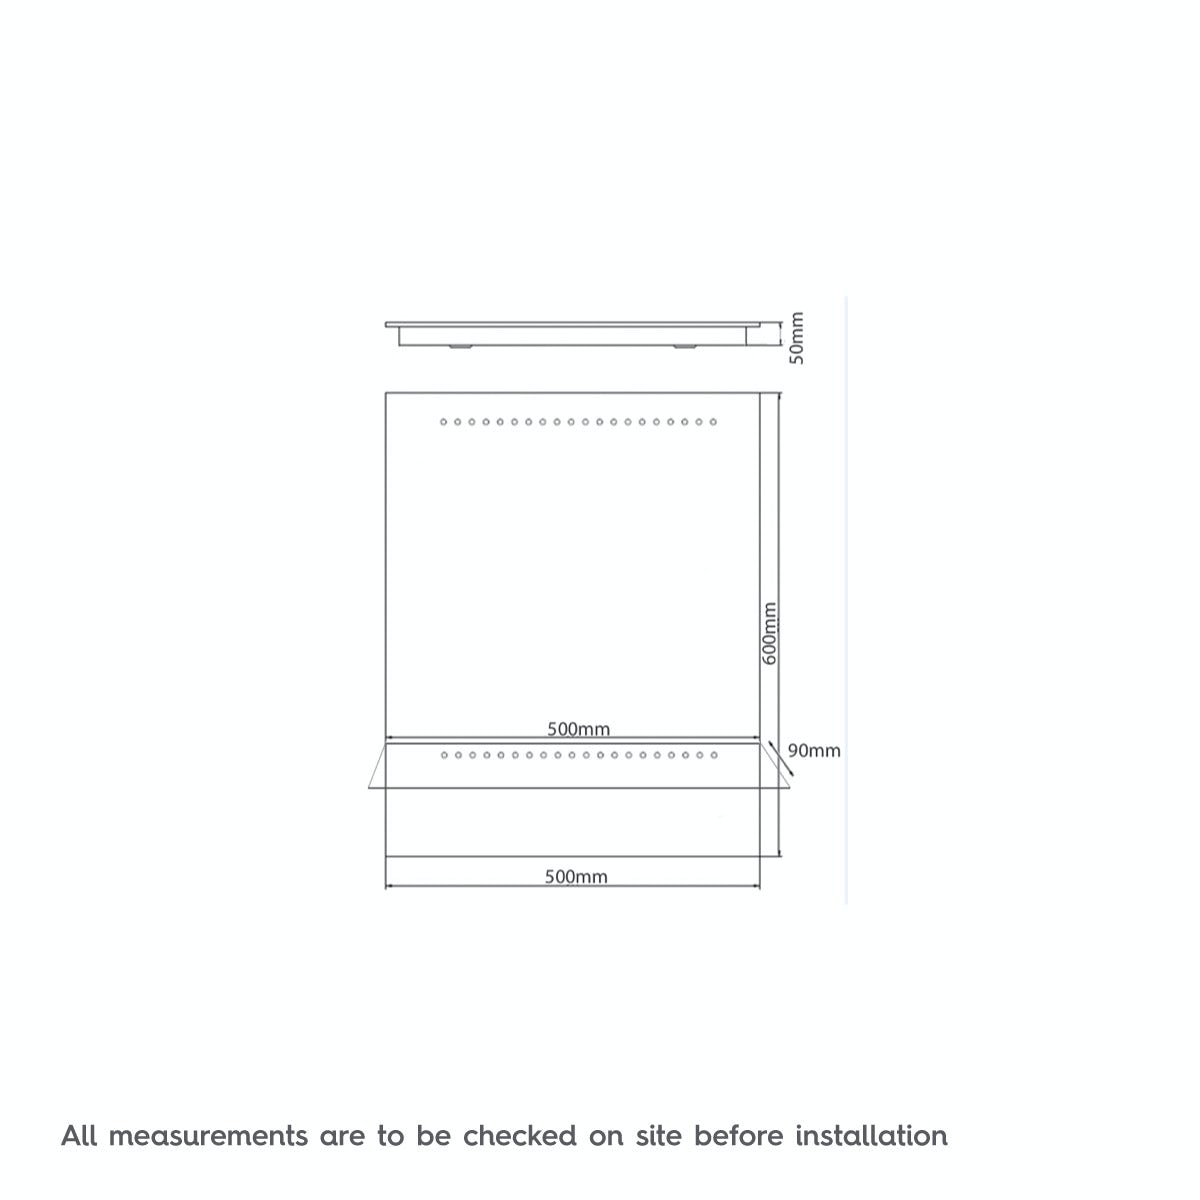 Dimensions for Mode Iridonia LED shelf mirror